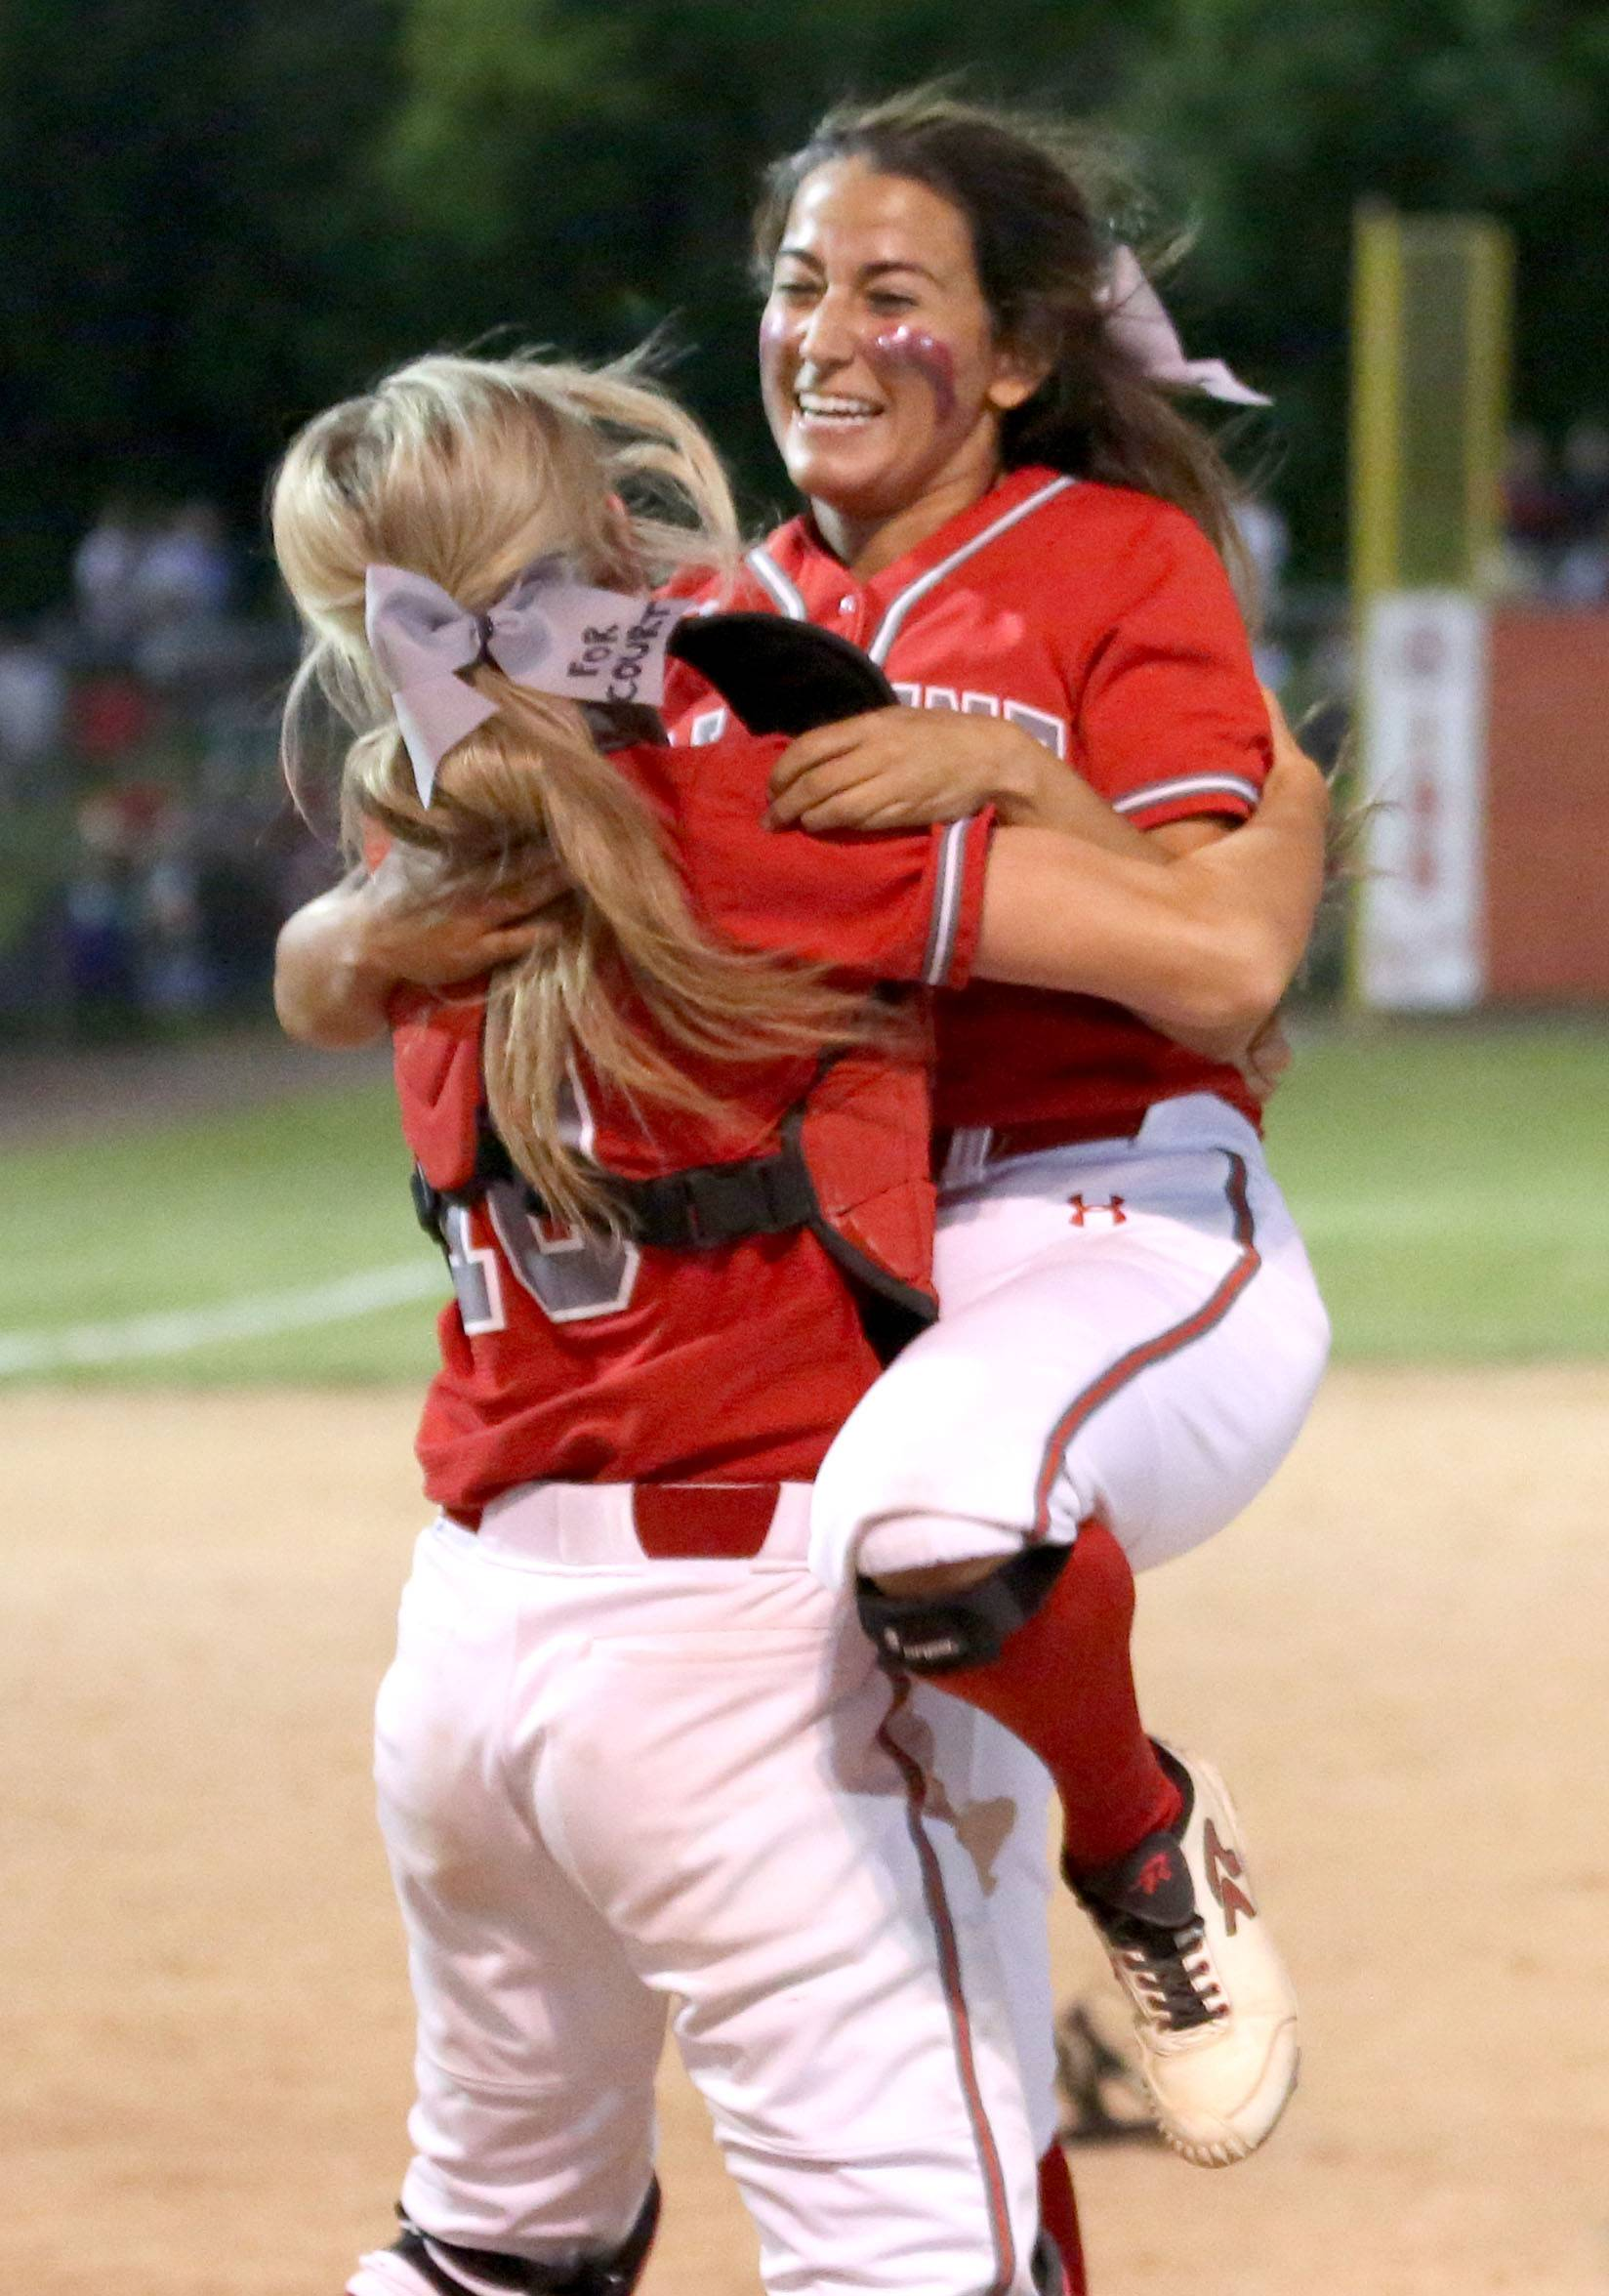 Palatine pitcher Sarah Grossman gets a lift after the final out in a 6-3 win over Barrington in Class 4A supersectional play at Barrington on Monday night.